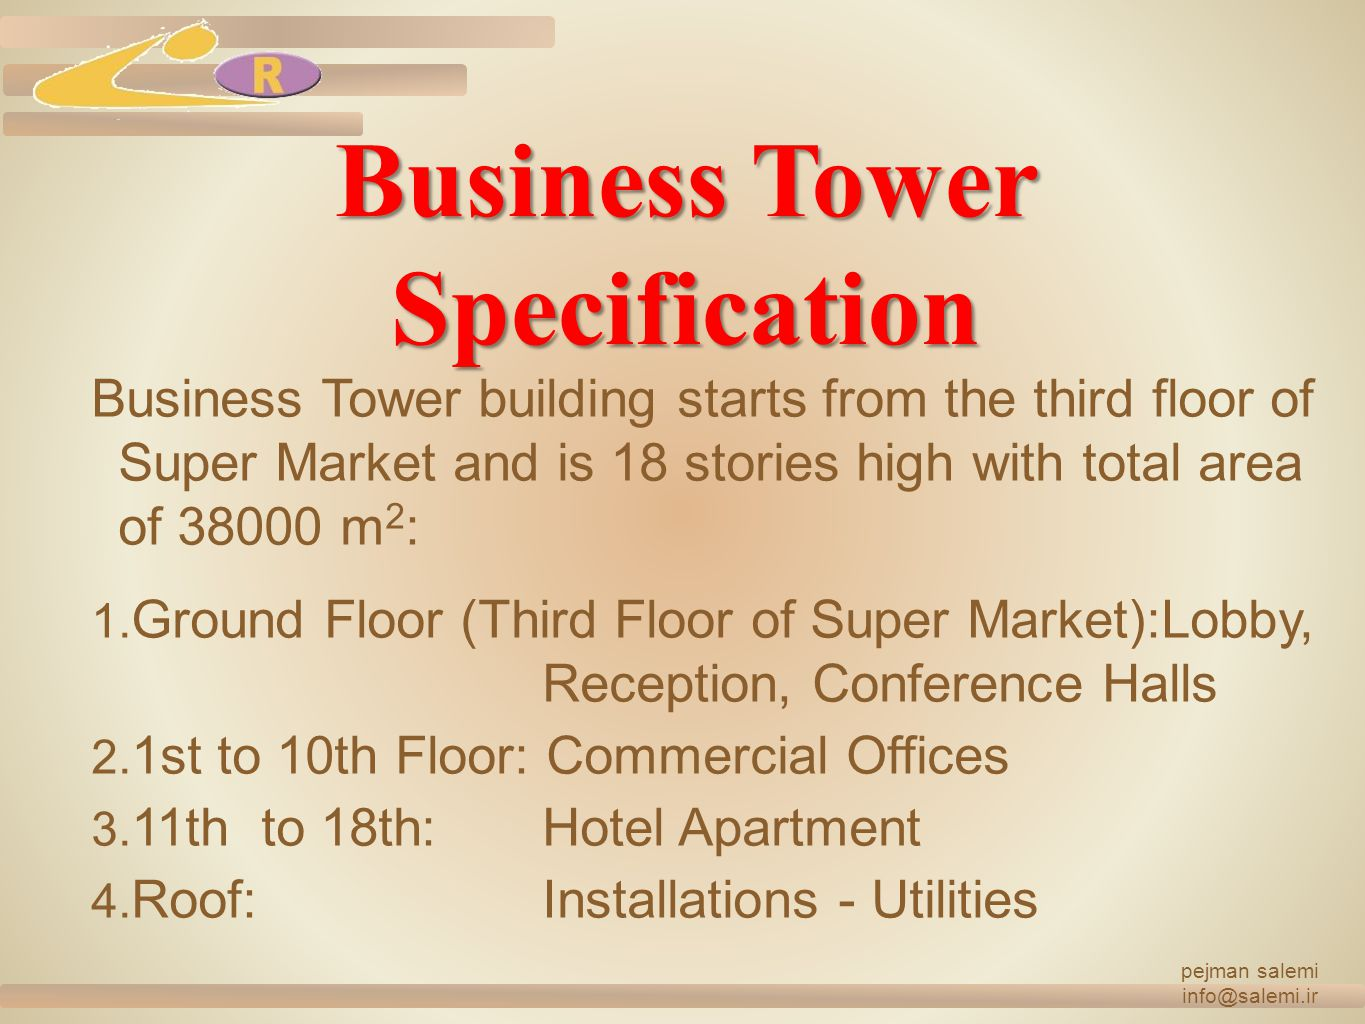 Business Tower Specification